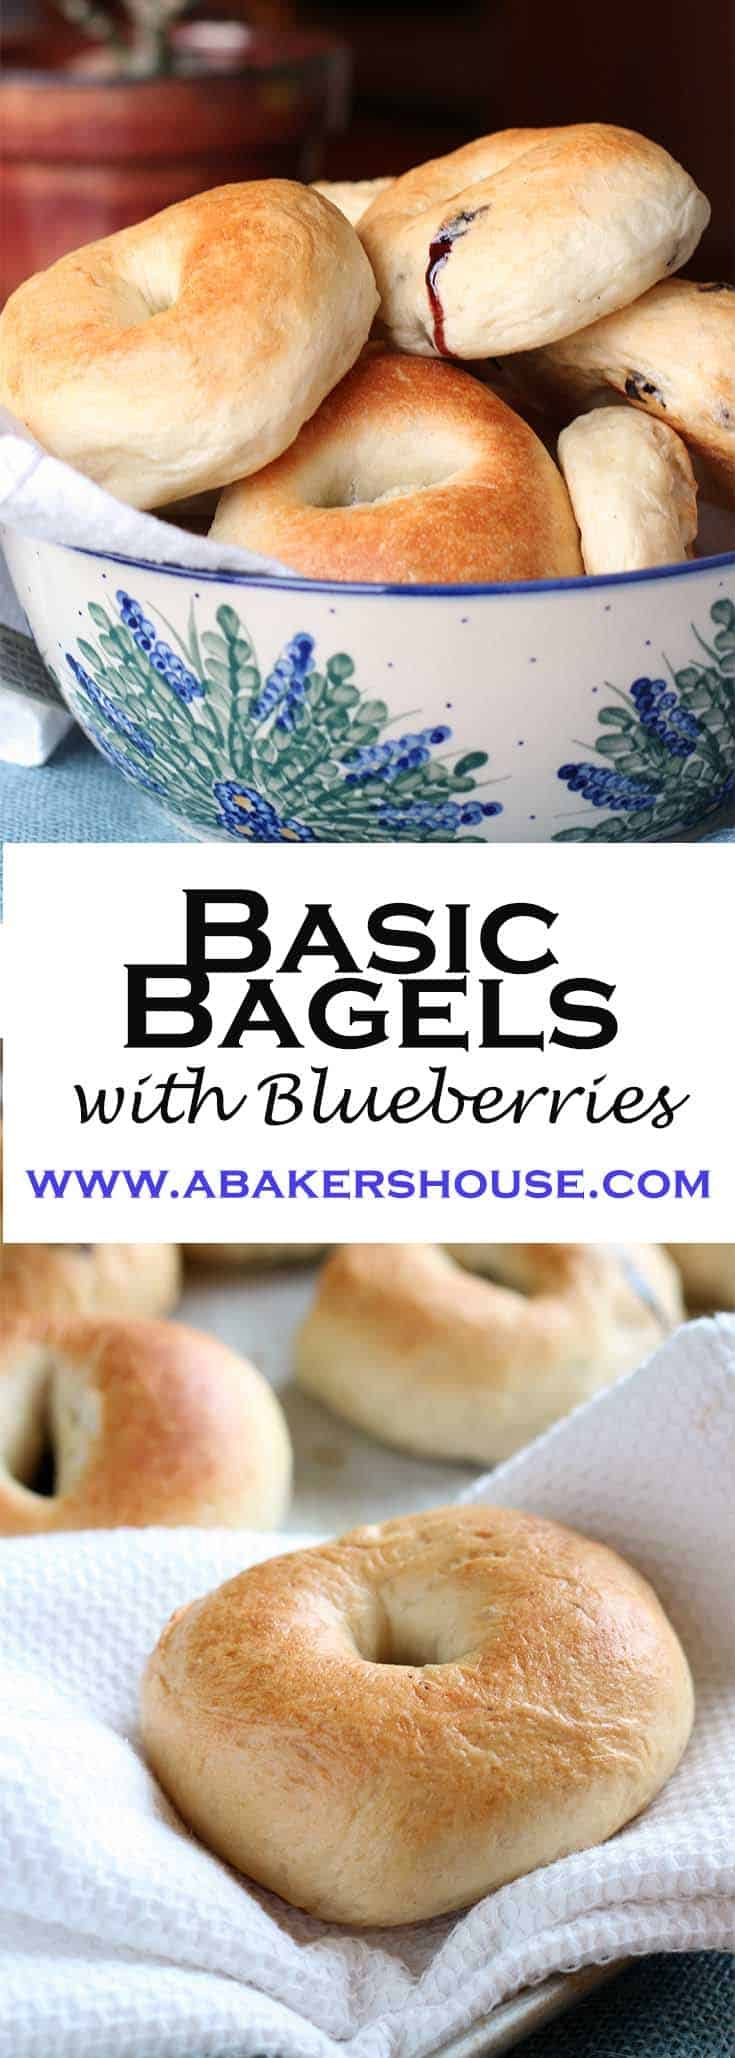 Making Blueberry Bagels at home doesn't require special equipment. Make these homemade basic bagels and see how easy it is to enjoy that bakery taste at home! #abakershouse #bagels #kingarthurflour #breadrecipe